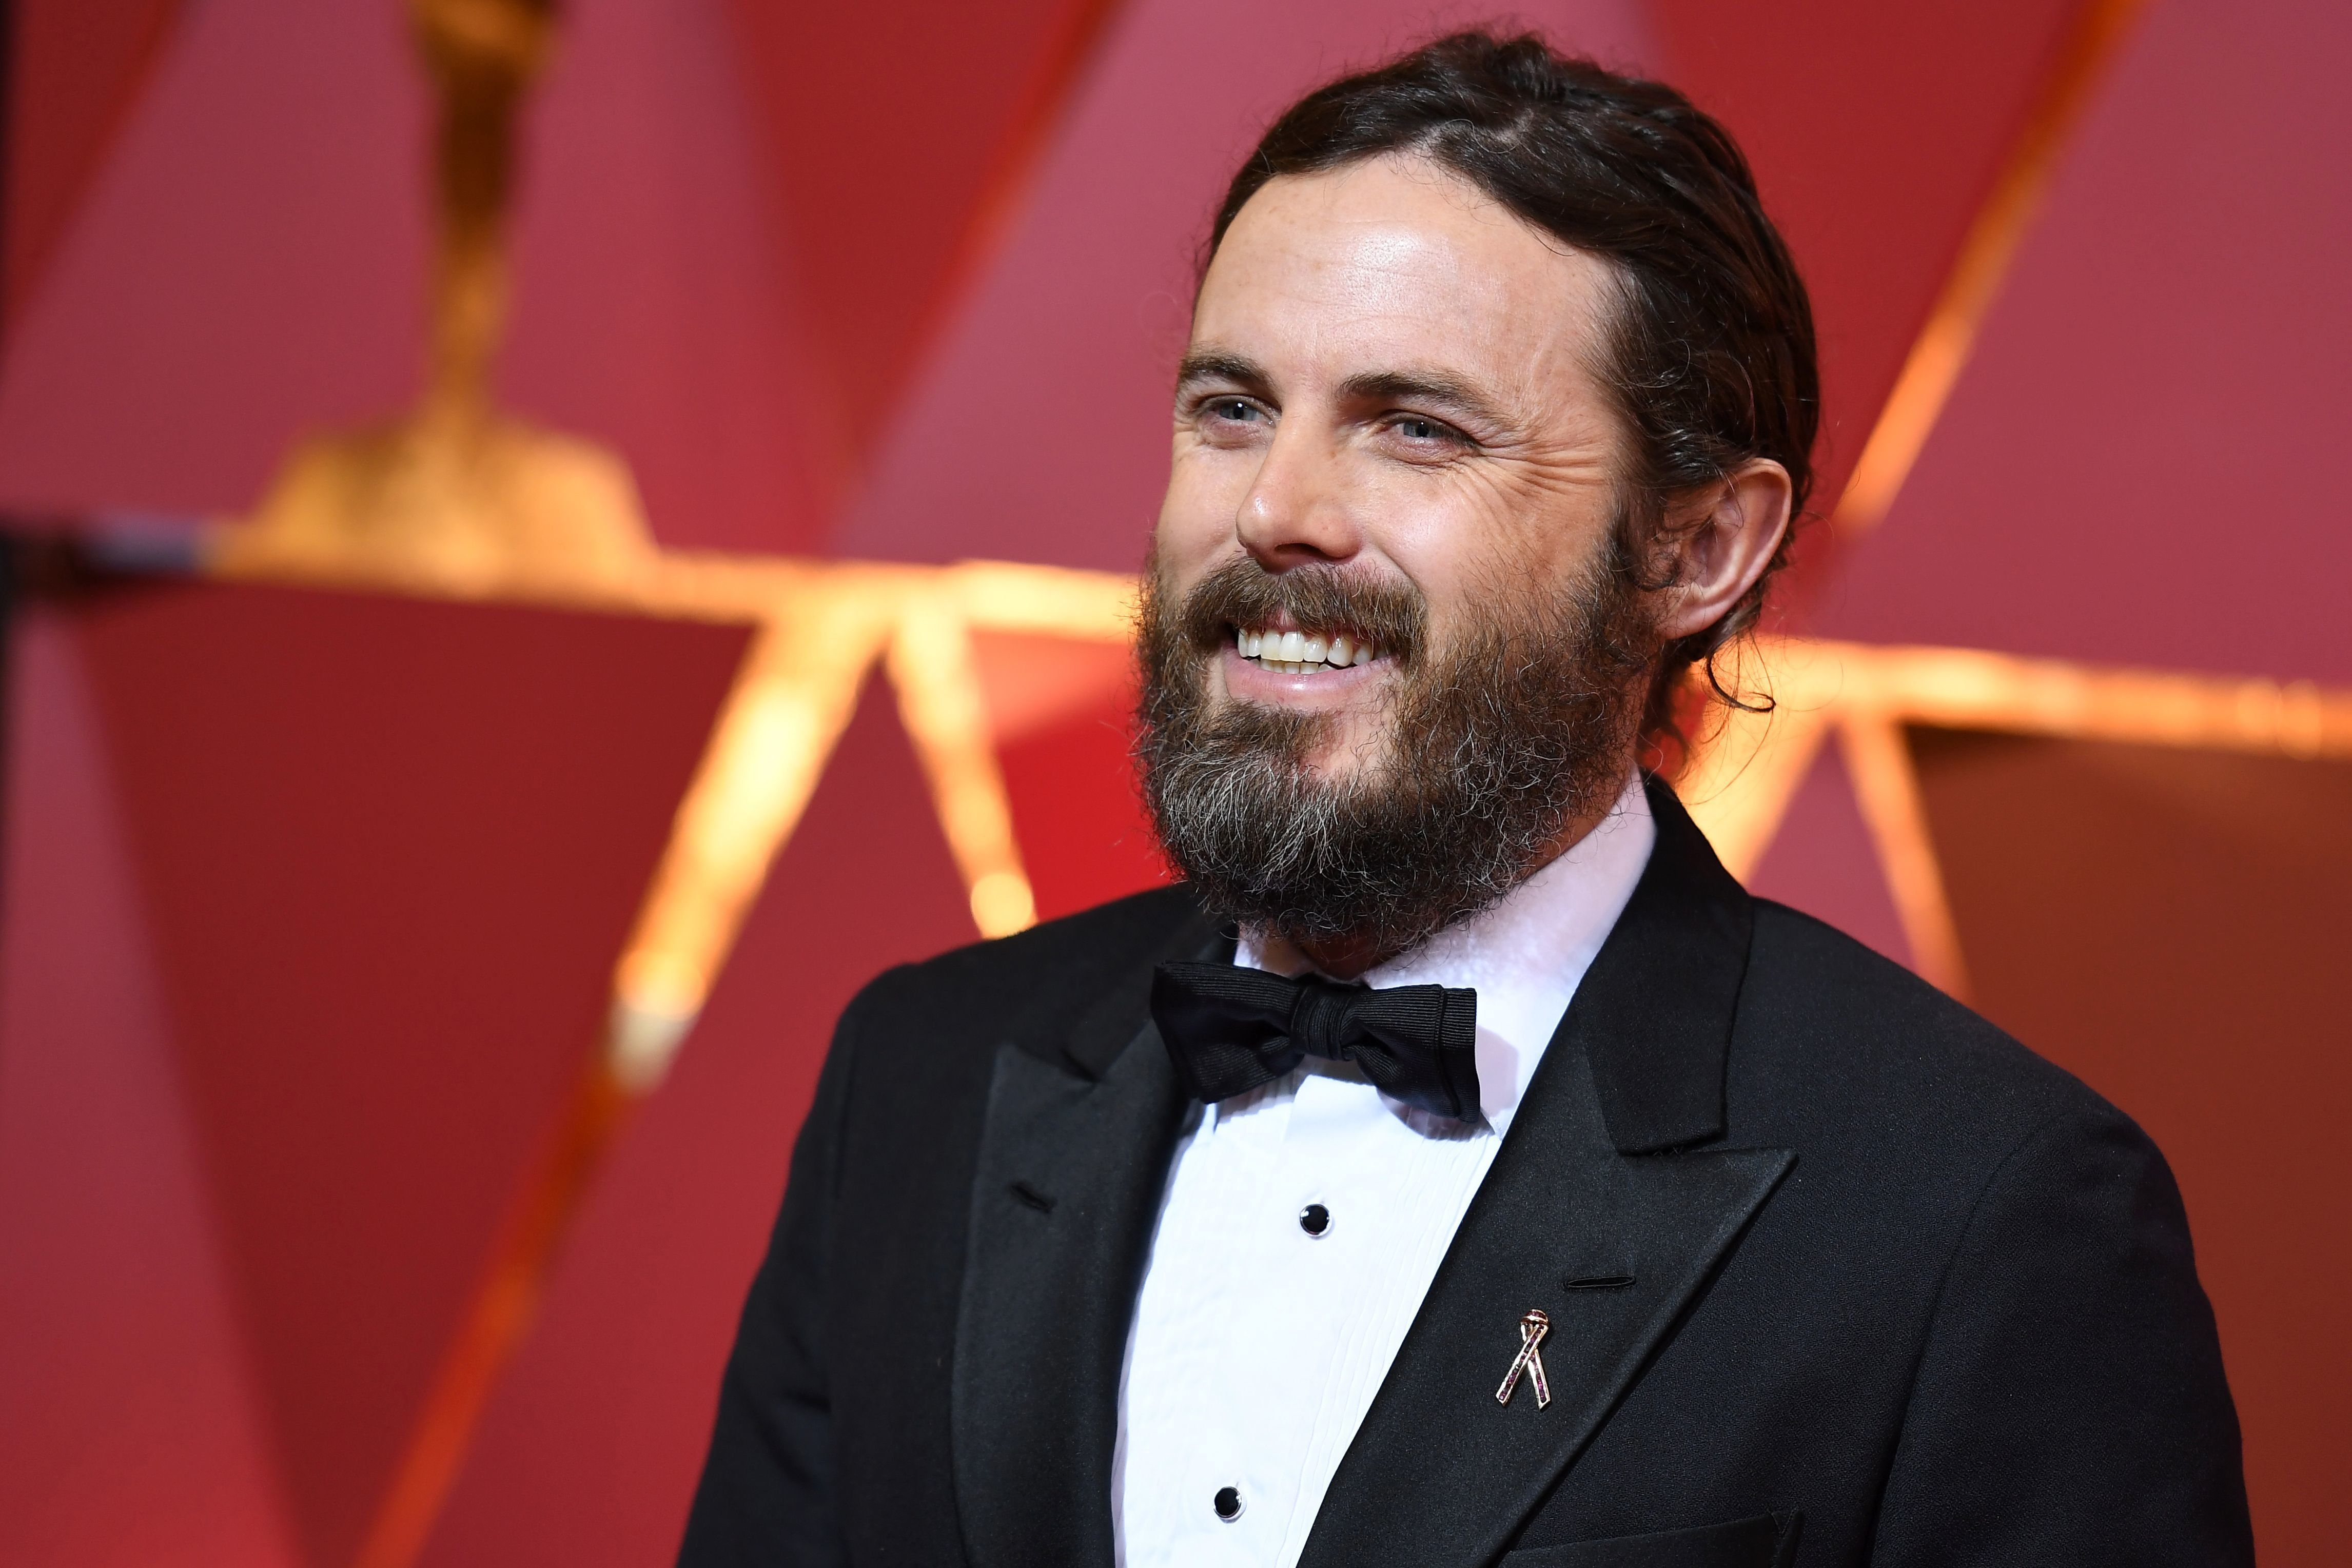 Nominee for Best actor in 'Manchester By The Sea' Casey Affleck poses as he arrives on the red carpet for the 89th Oscars on February 26, 2017 in Hollywood, California.  / AFP / ANGELA WEISS        (Photo credit should read ANGELA WEISS/AFP/Getty Images)